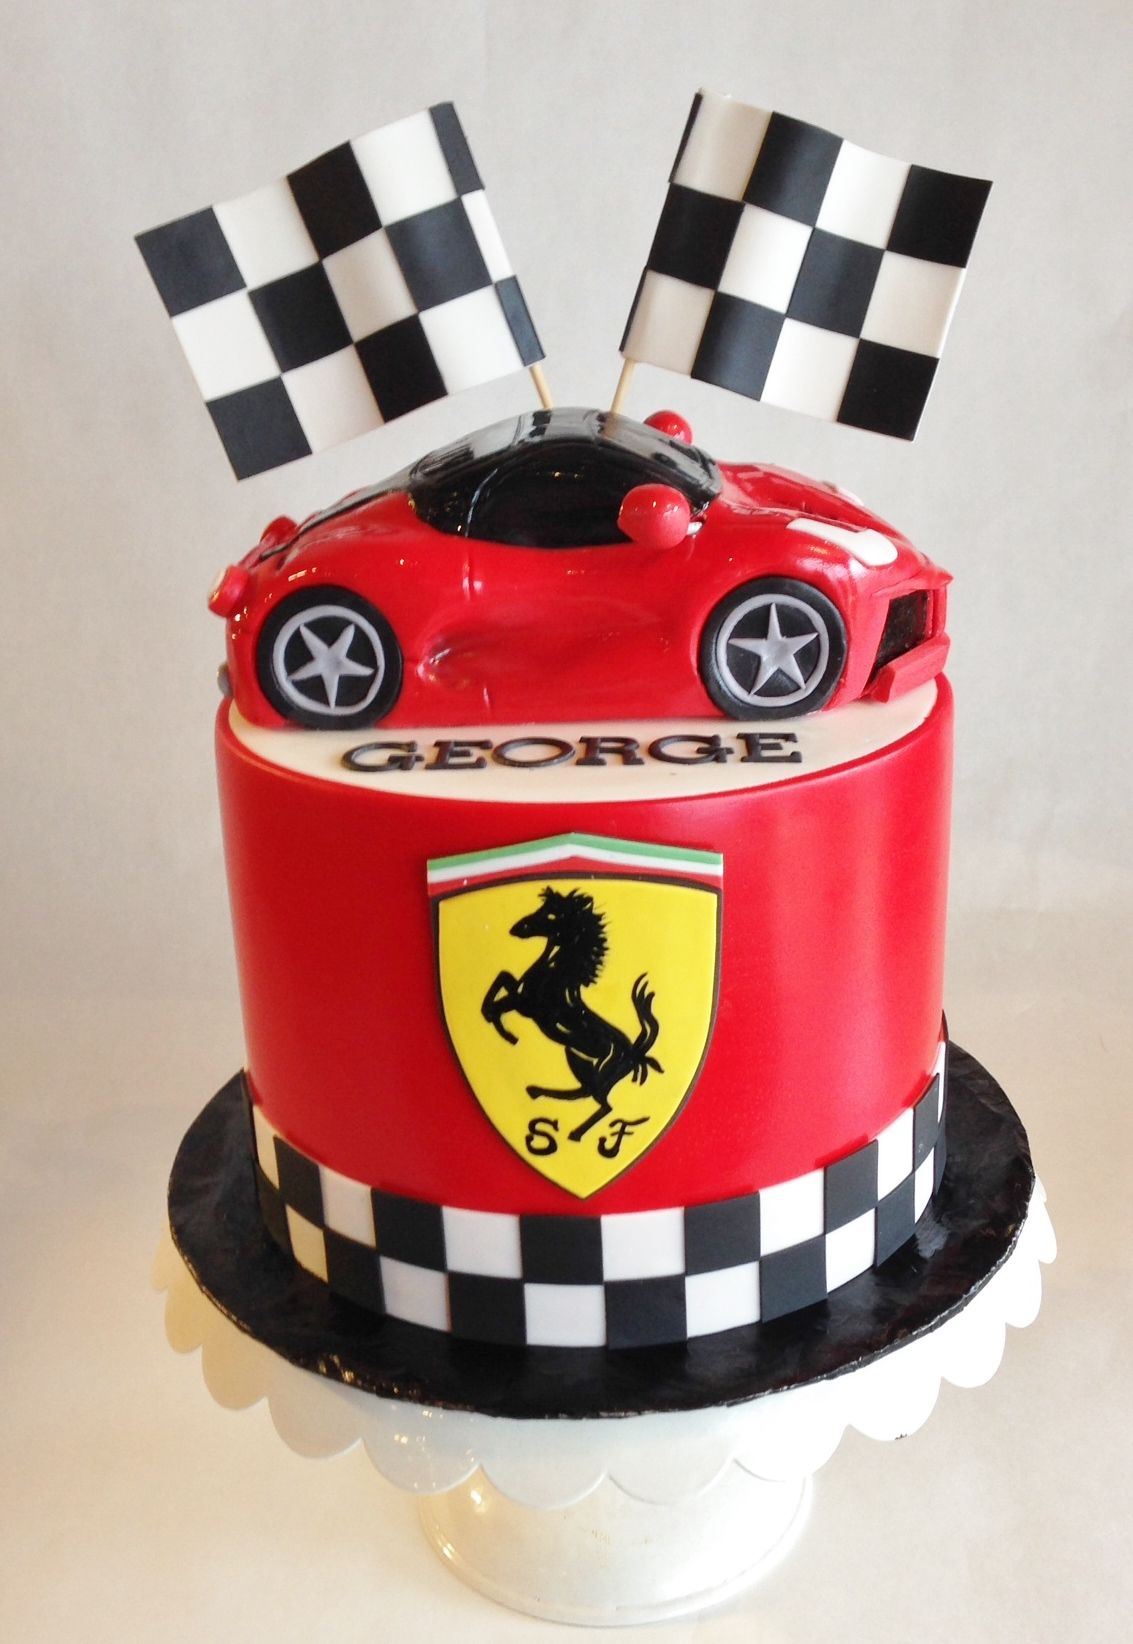 Cake Decorating Checkered Flag : Birthday cake Ferrari custom topper fondant ...